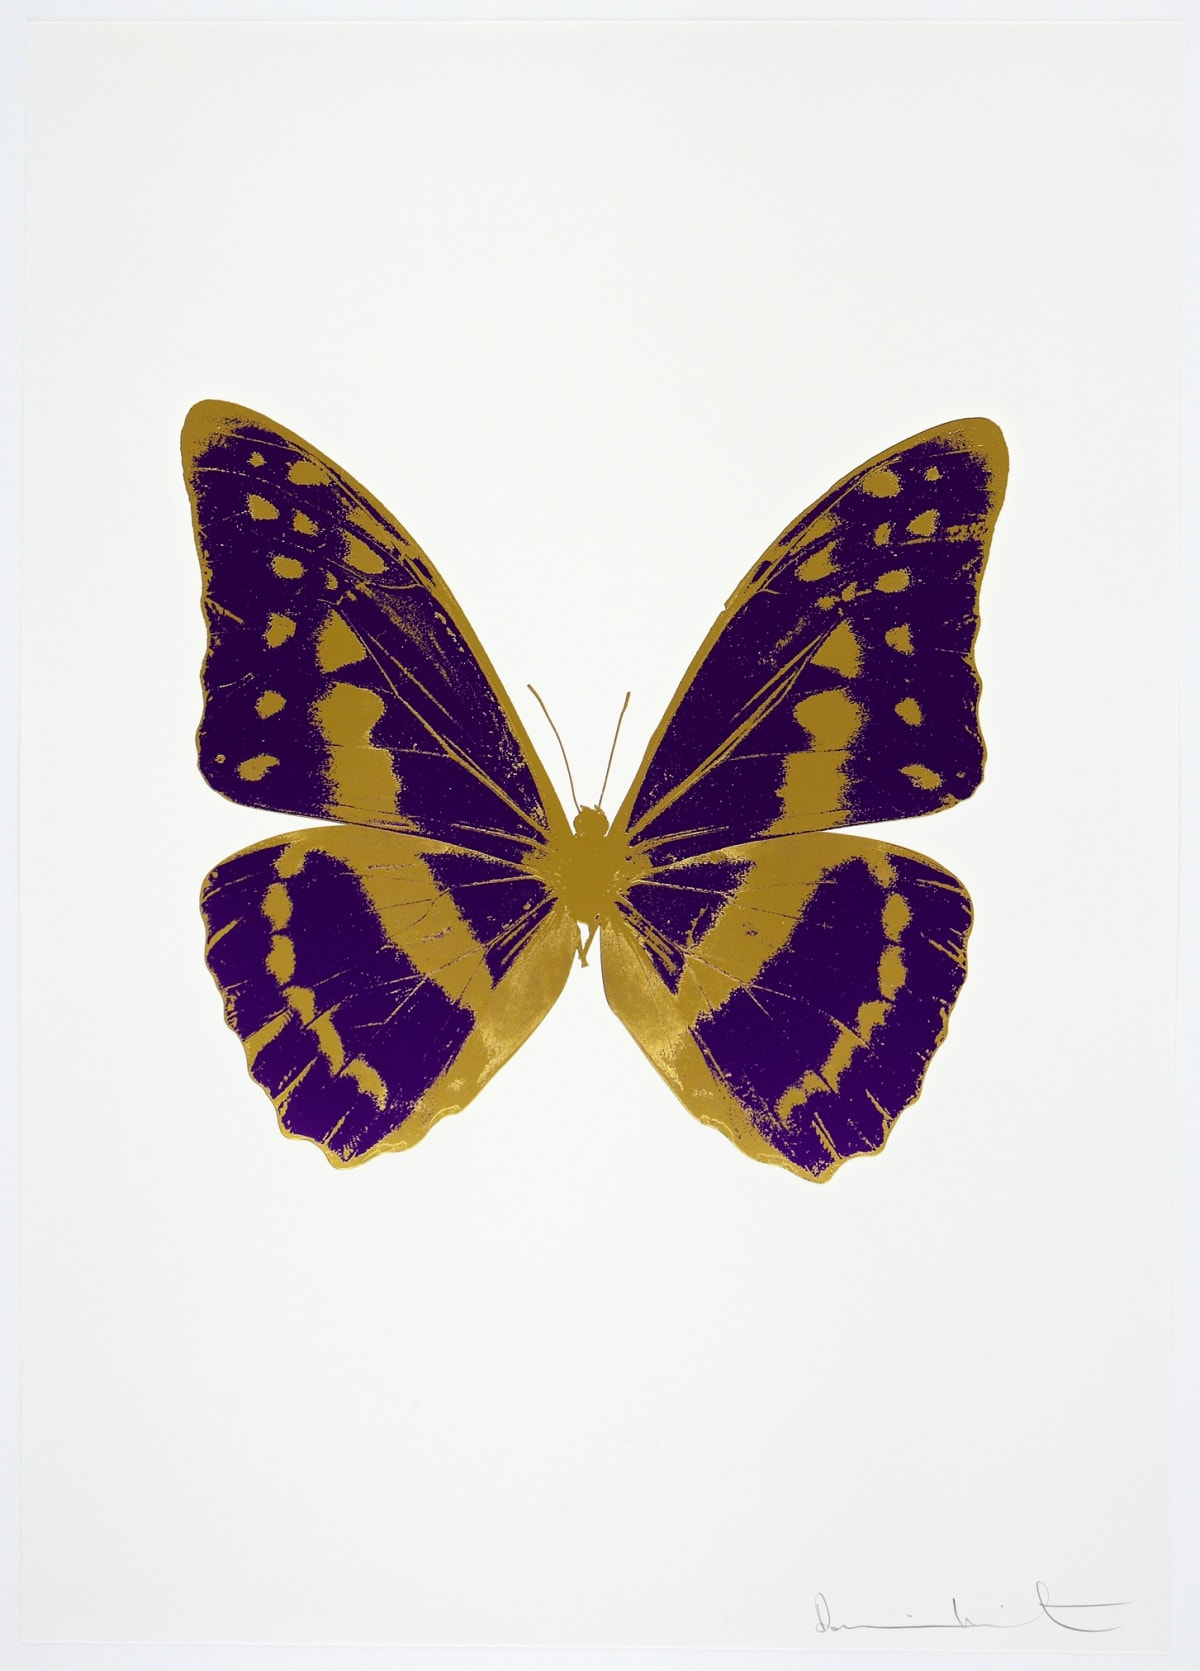 Damien Hirst The Souls III - Imperial Purple/Oriental Gold/Oriental Gold, 2010 2 colour foil block on 300gsm Arches 88 archival paper. Signed and numbered. Published by Paul Stolper and Other Criteria 72 x 51cm OC7966 / 660-69 Edition of 15